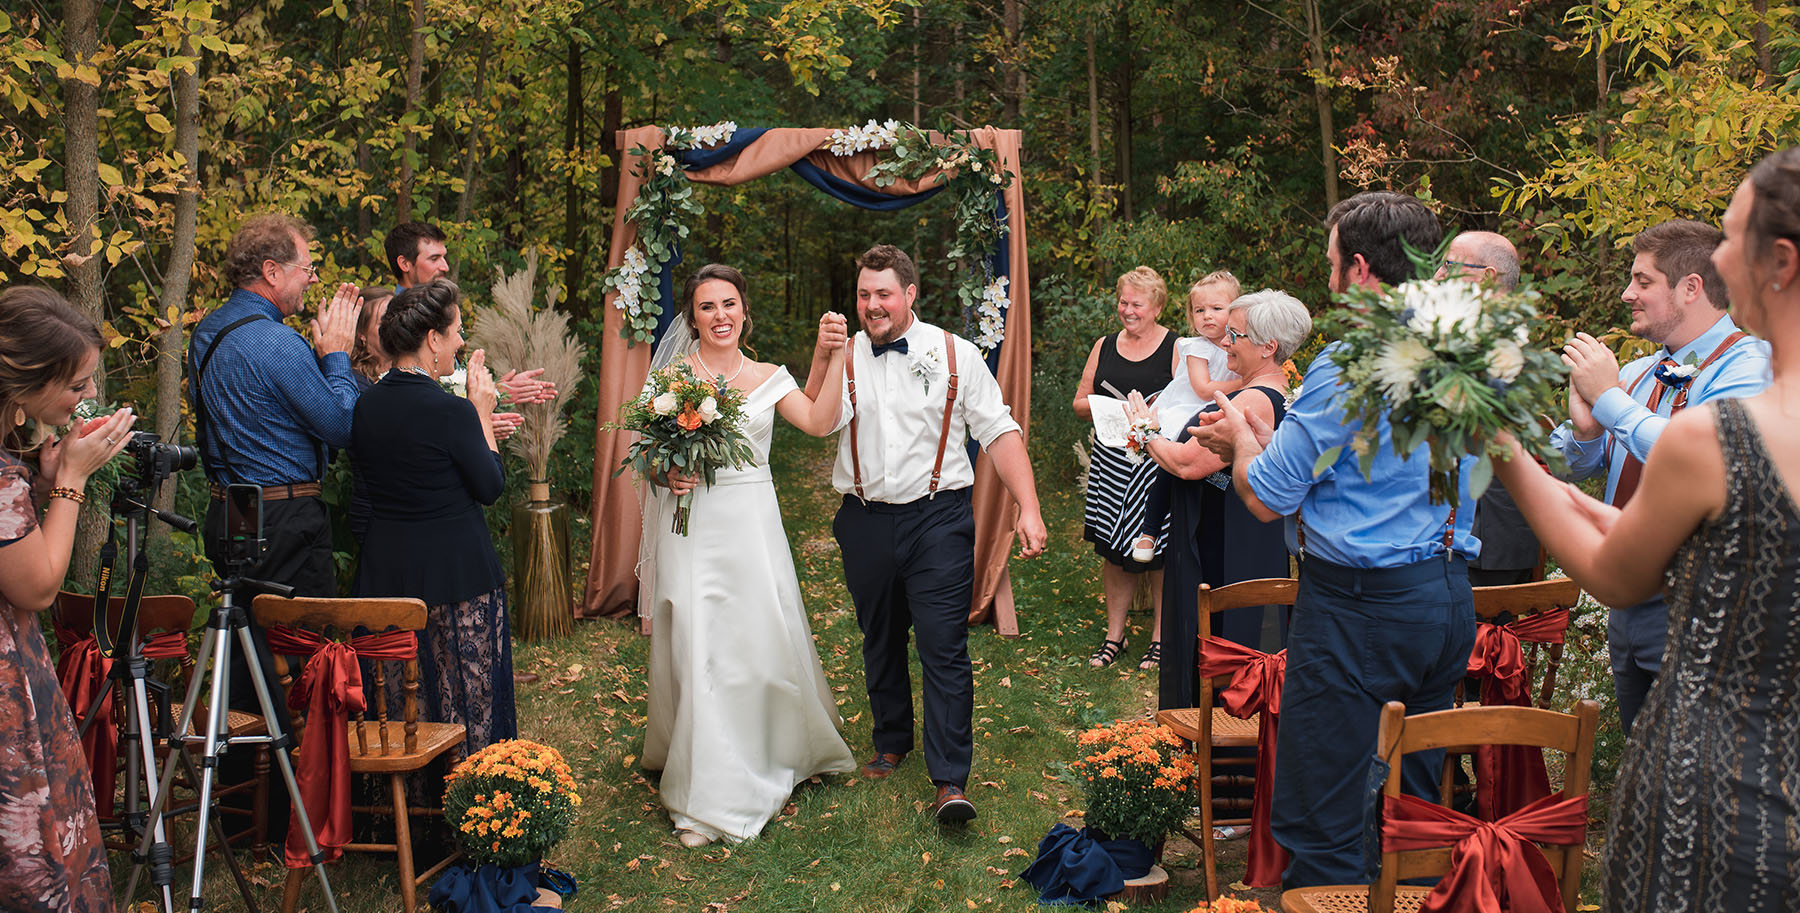 bride and groom smiling during intimate wedding ceremony recessional